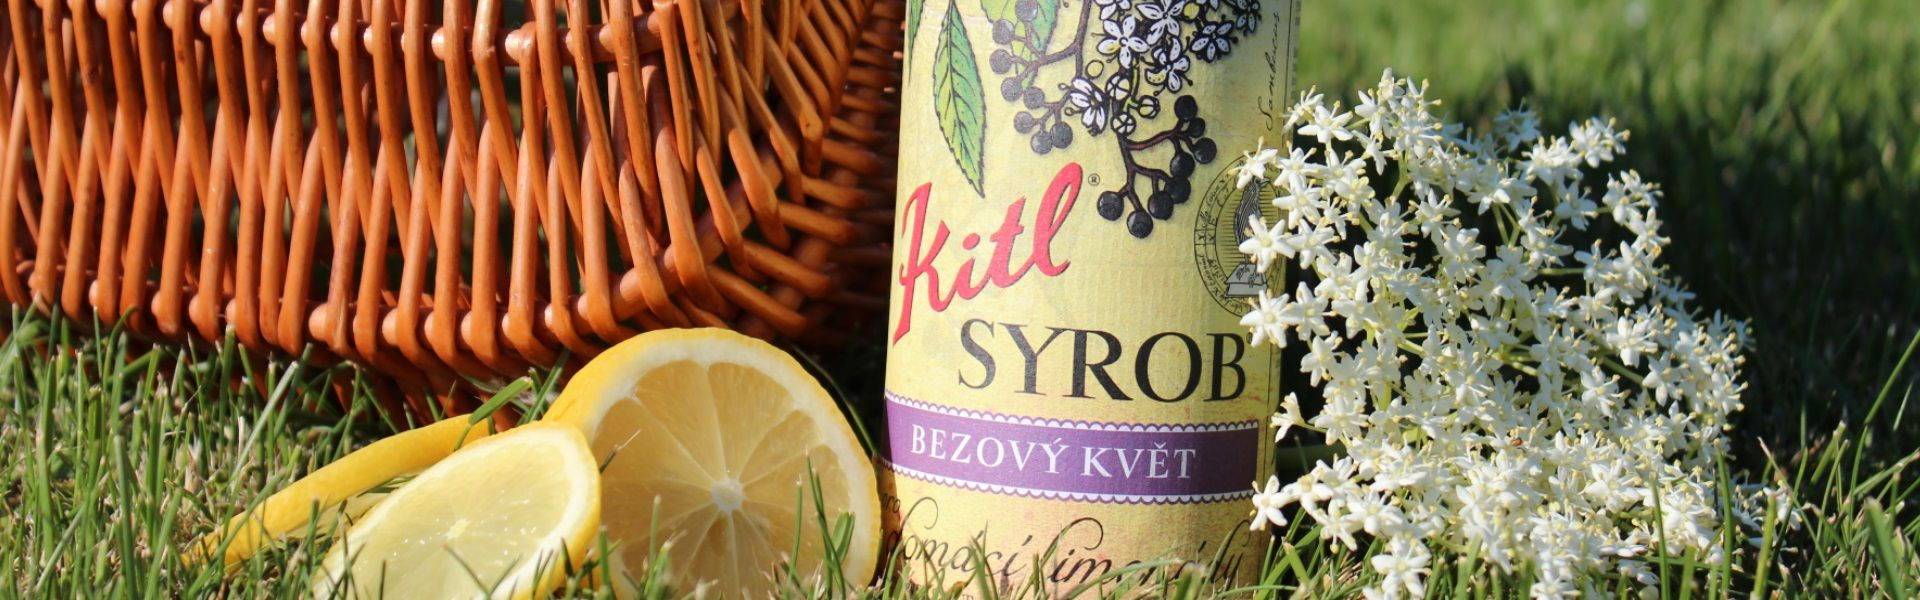 Elderflower syrup Kitl